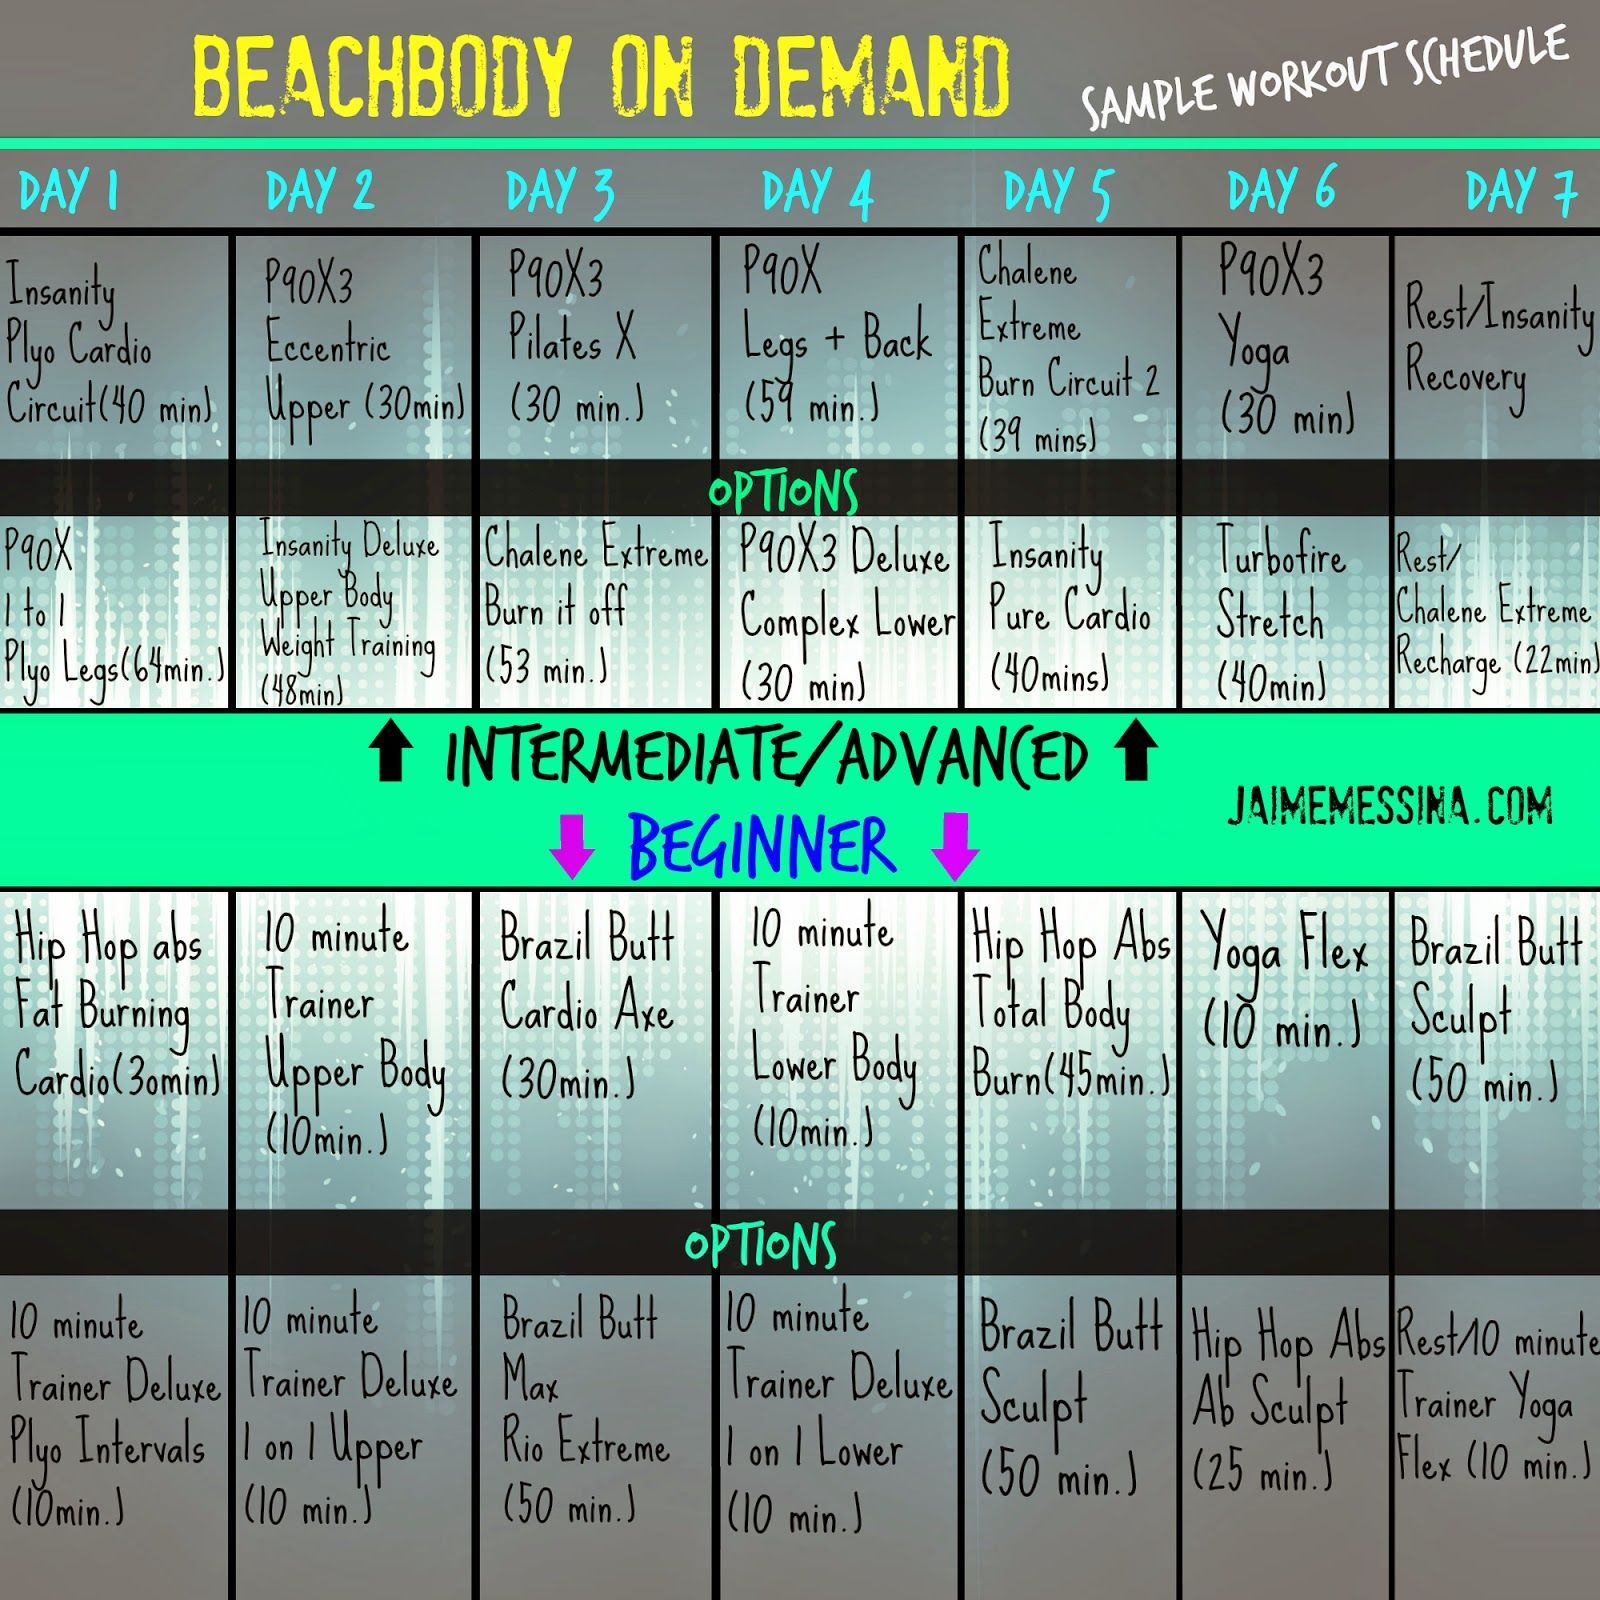 BodBeachbody On Demand Free Workout Schedule Workout Hybrid